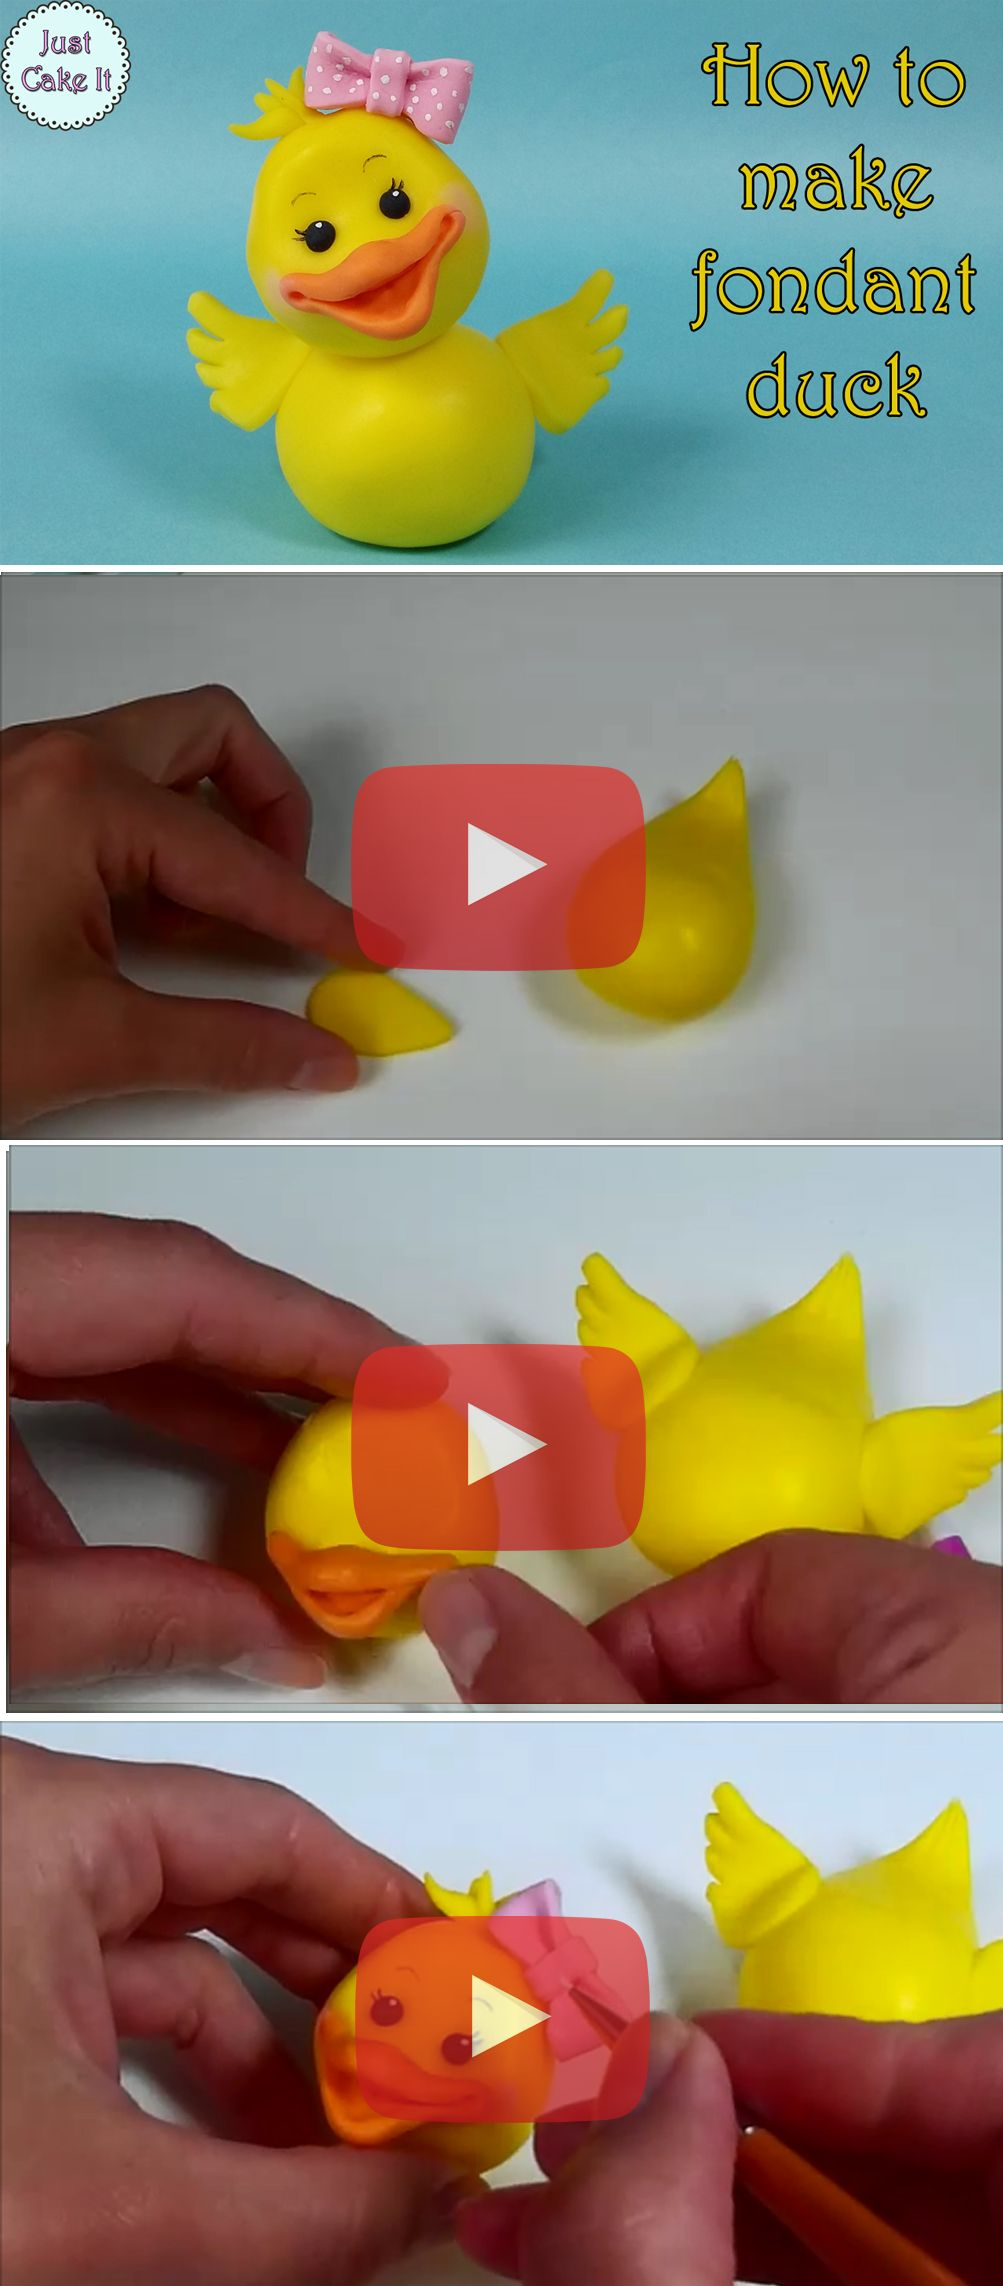 How to make fondant feathers youtube - Tutorial For A Fondant Little Duck Cake Topper Watch It Here Https